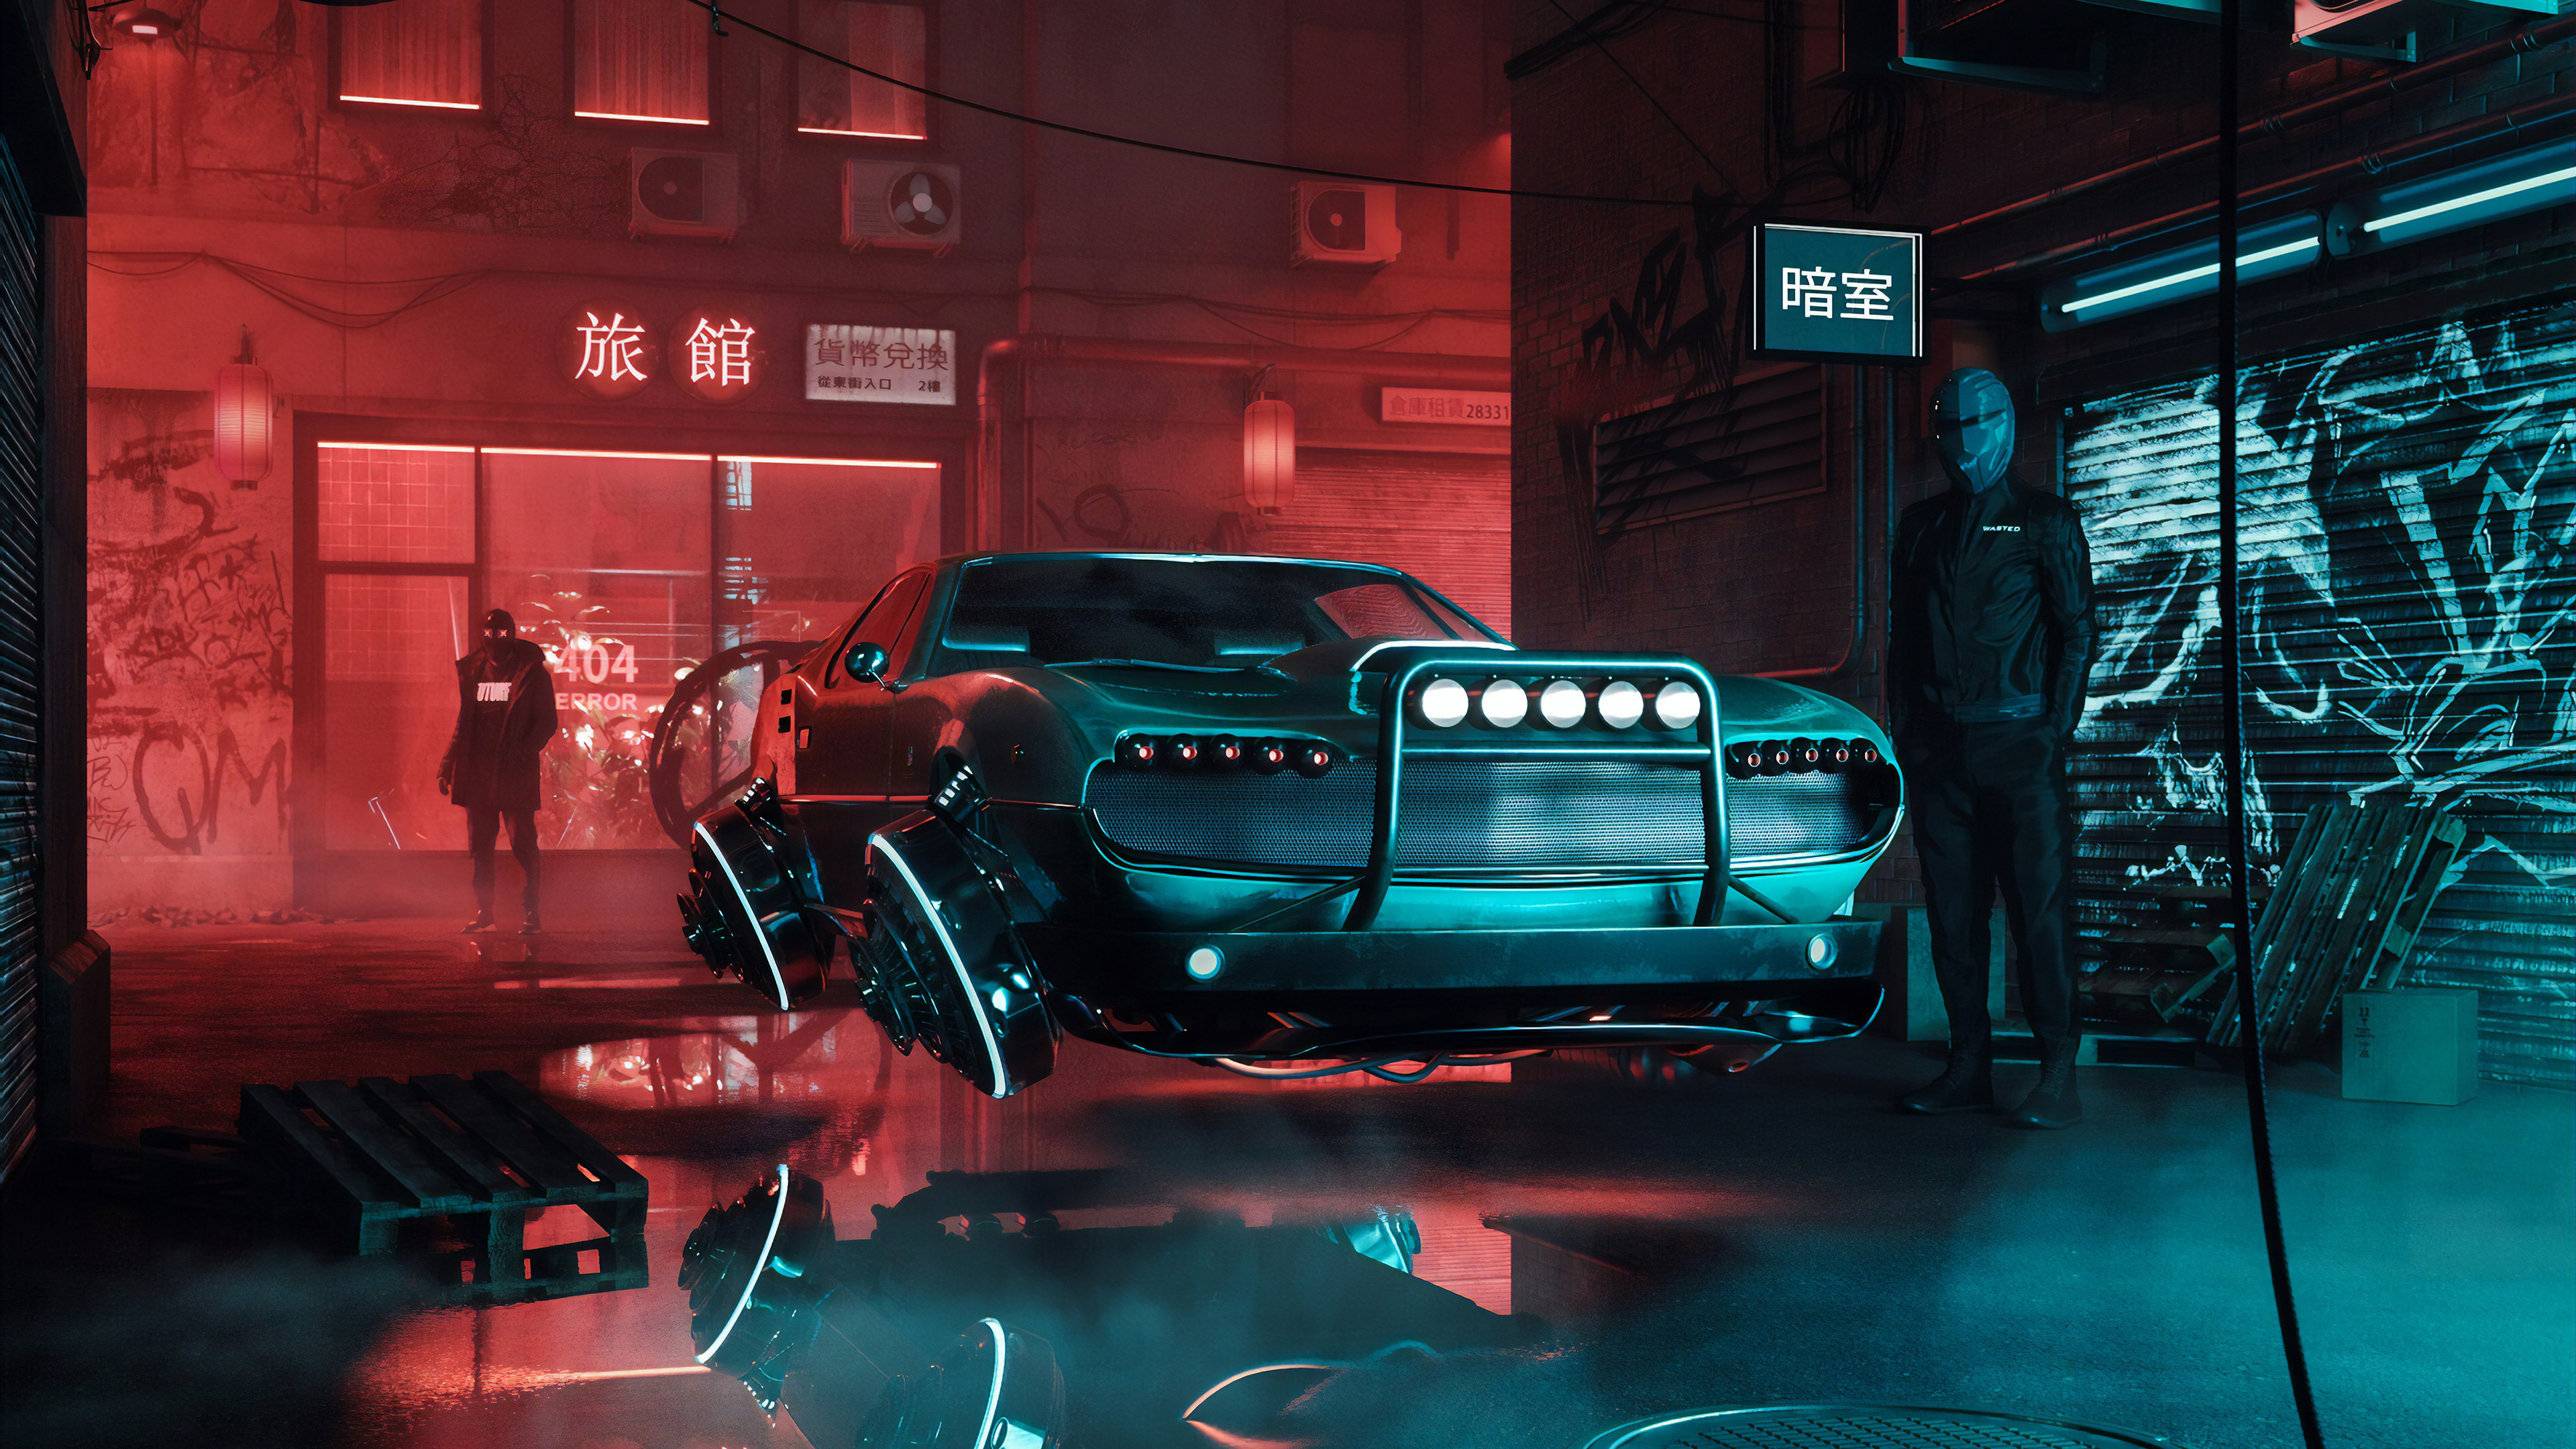 cyber cars 1569188367 - Cyber Cars - hd-wallpapers, digital art wallpapers, cyberpunk wallpapers, cars wallpapers, artwork wallpapers, artstation wallpapers, artist wallpapers, 4k-wallpapers